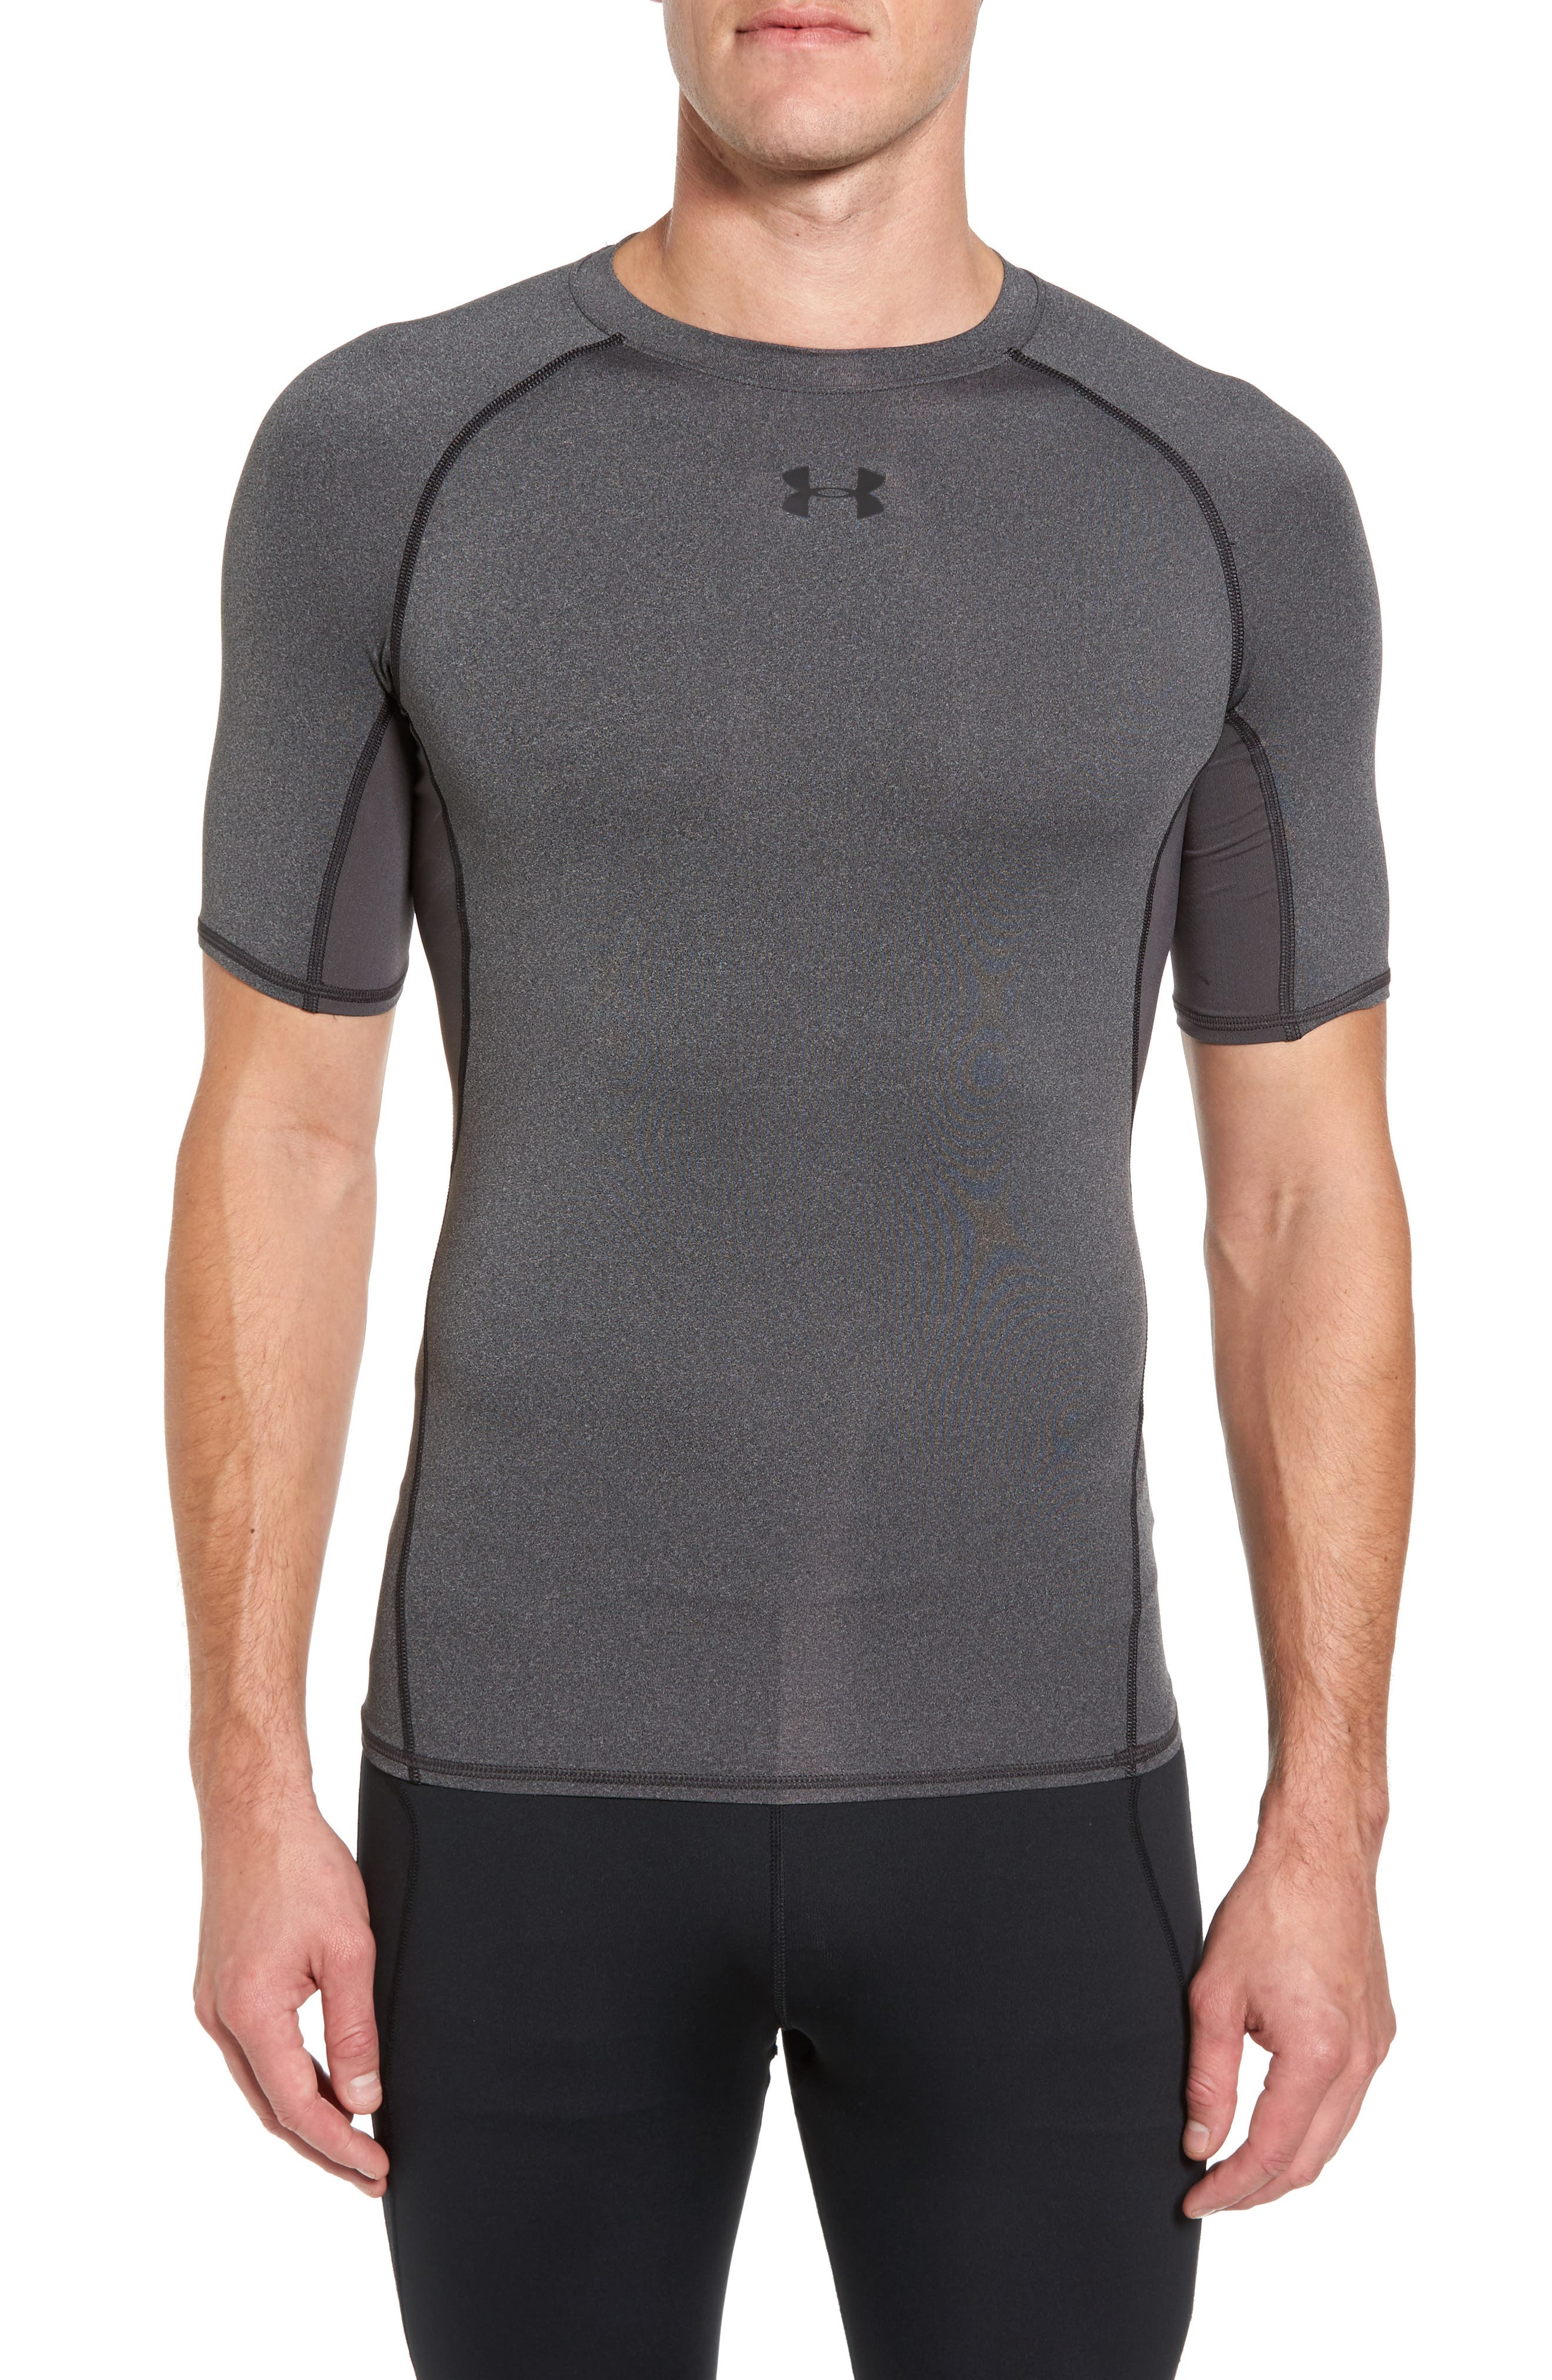 Under Armour Heatgear Compression Fit T-Shirt